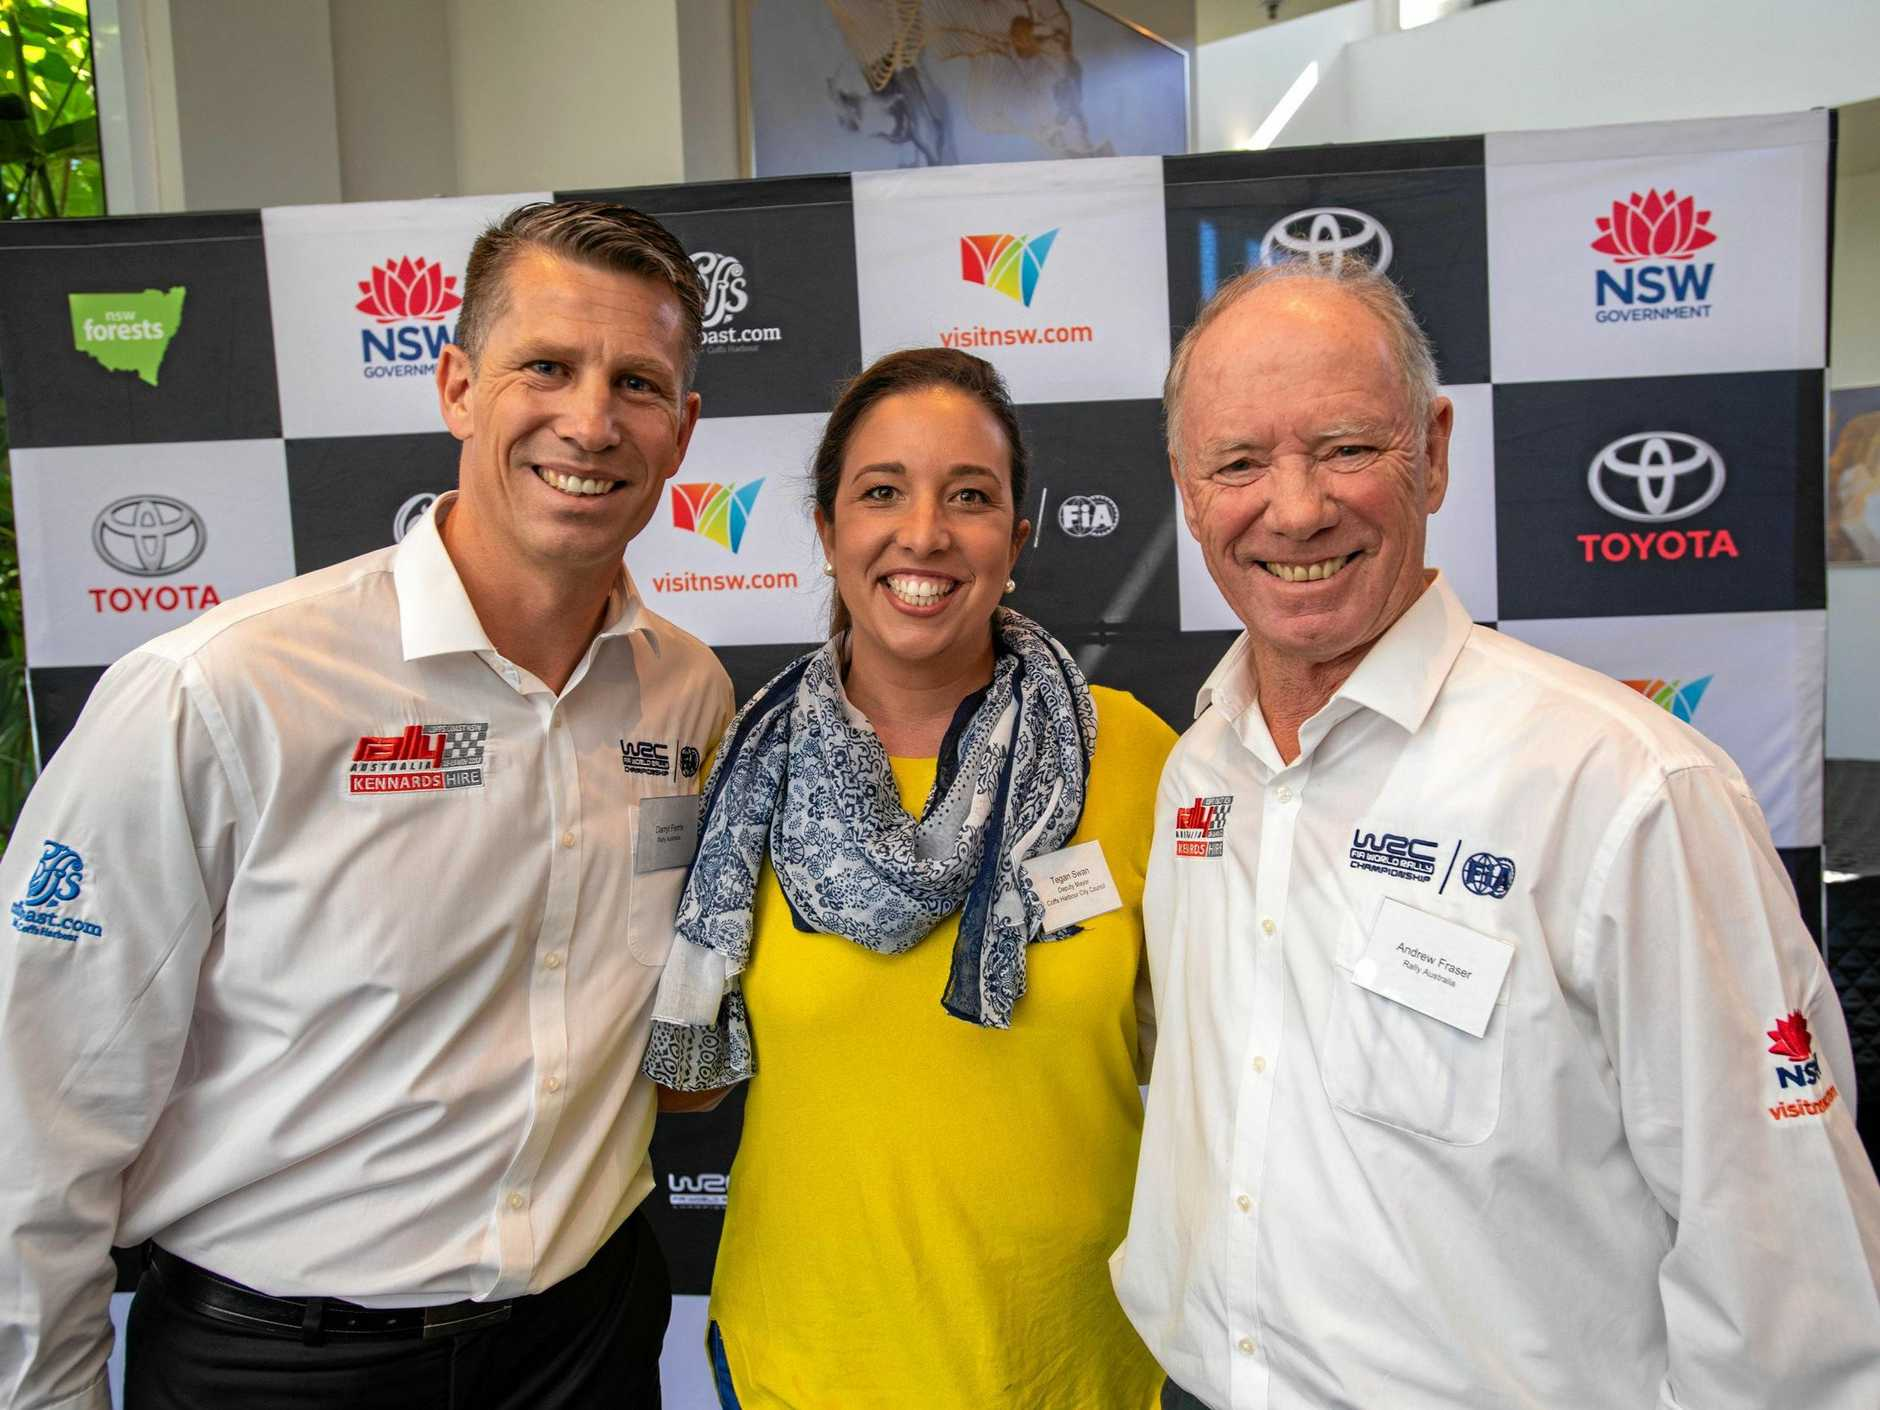 rally australia businesses breifing Darryl Ferris, Cr. Tegan Swan, Andrew Fraser.. 28 MAY 2019